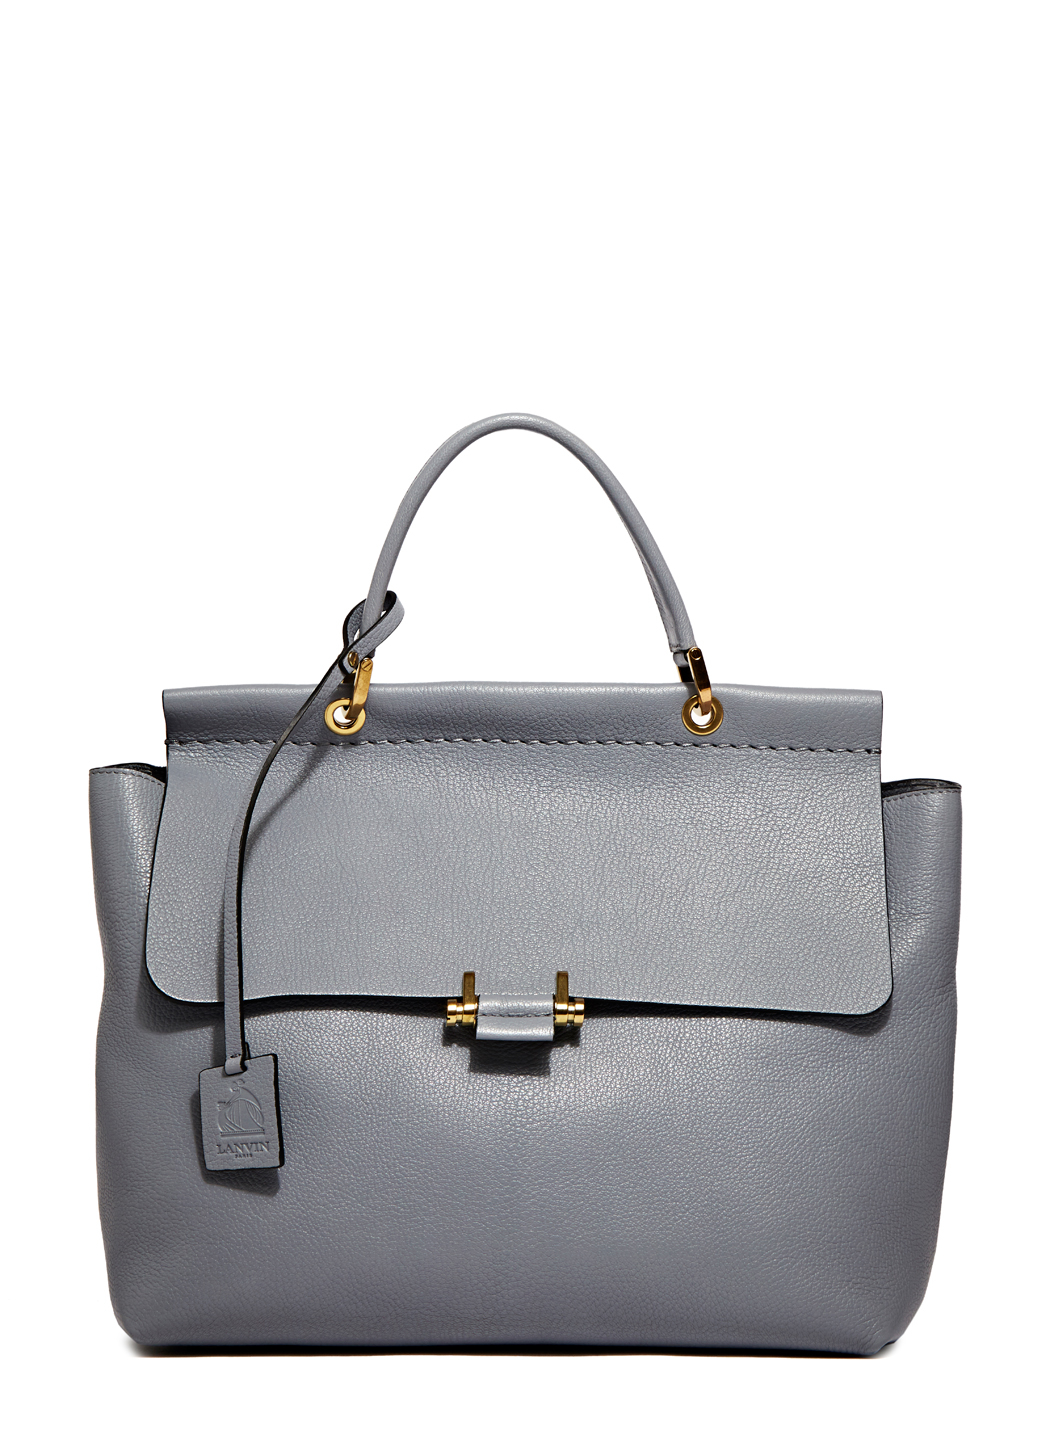 Lyst Lanvin Top Handle Leather Bag In Gray